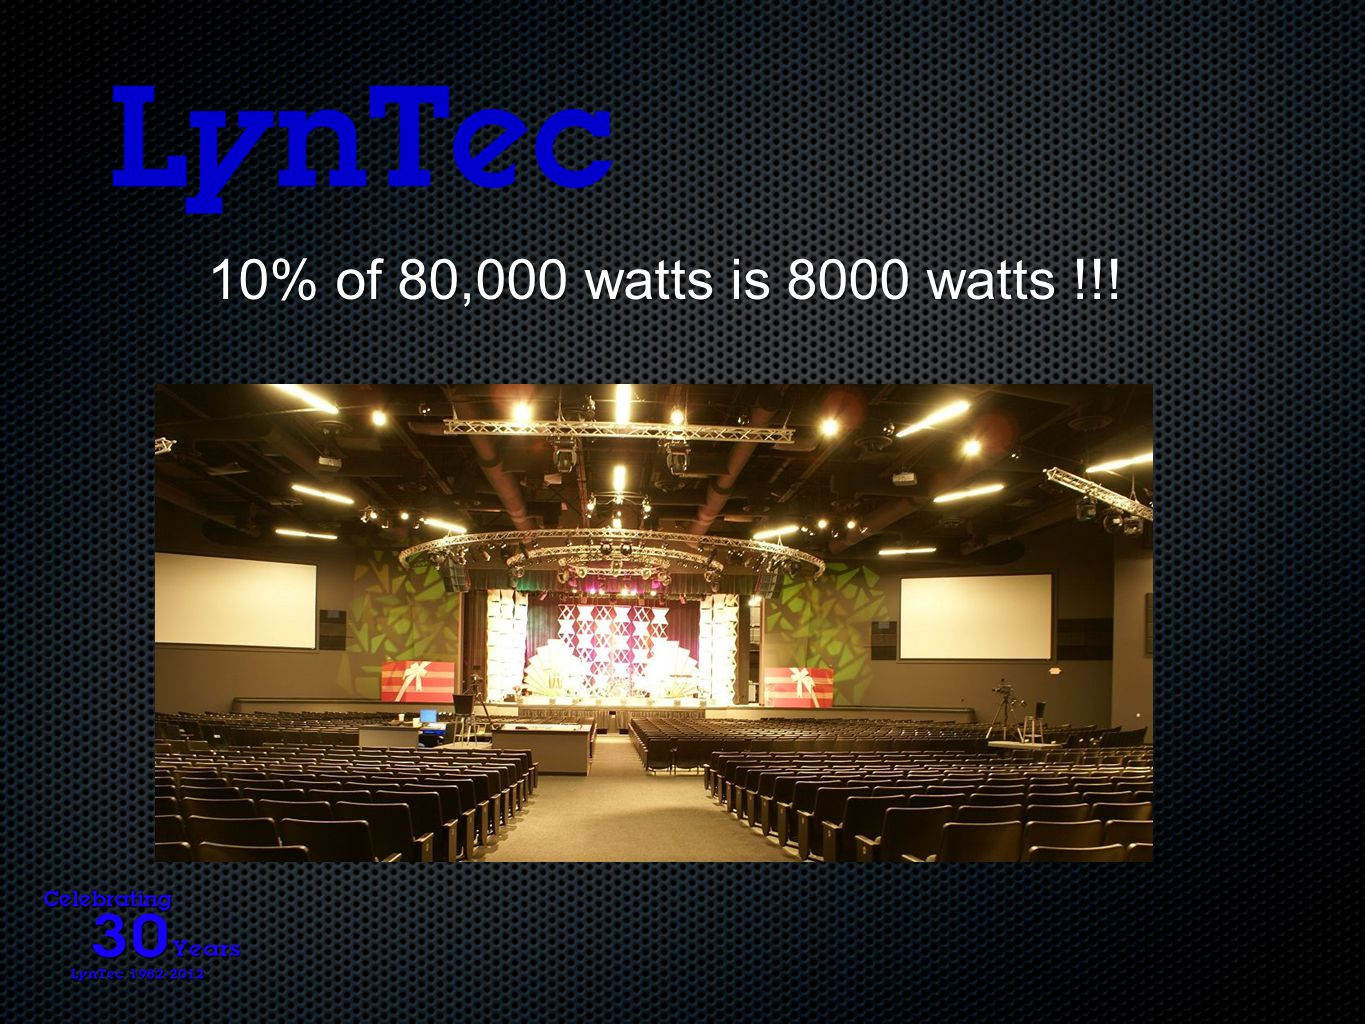 10% of 80,000 watts is 8000 watts !!!